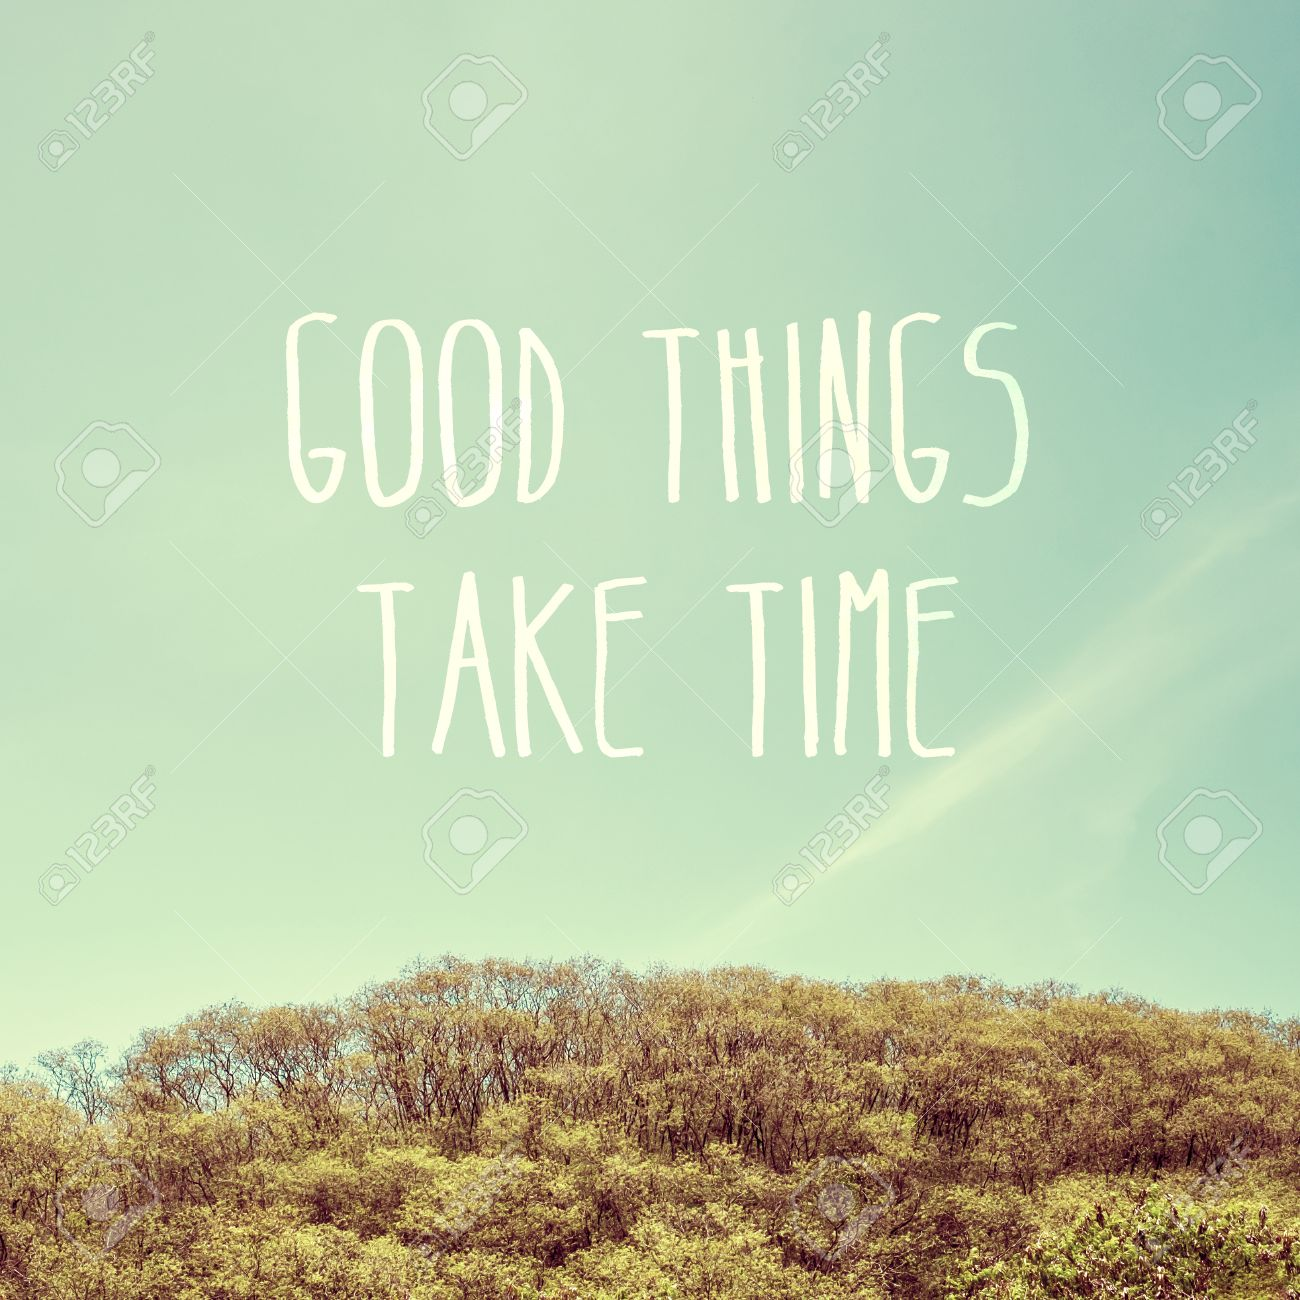 Inspiration Quote Good Things Take Time On Sky With Mountain